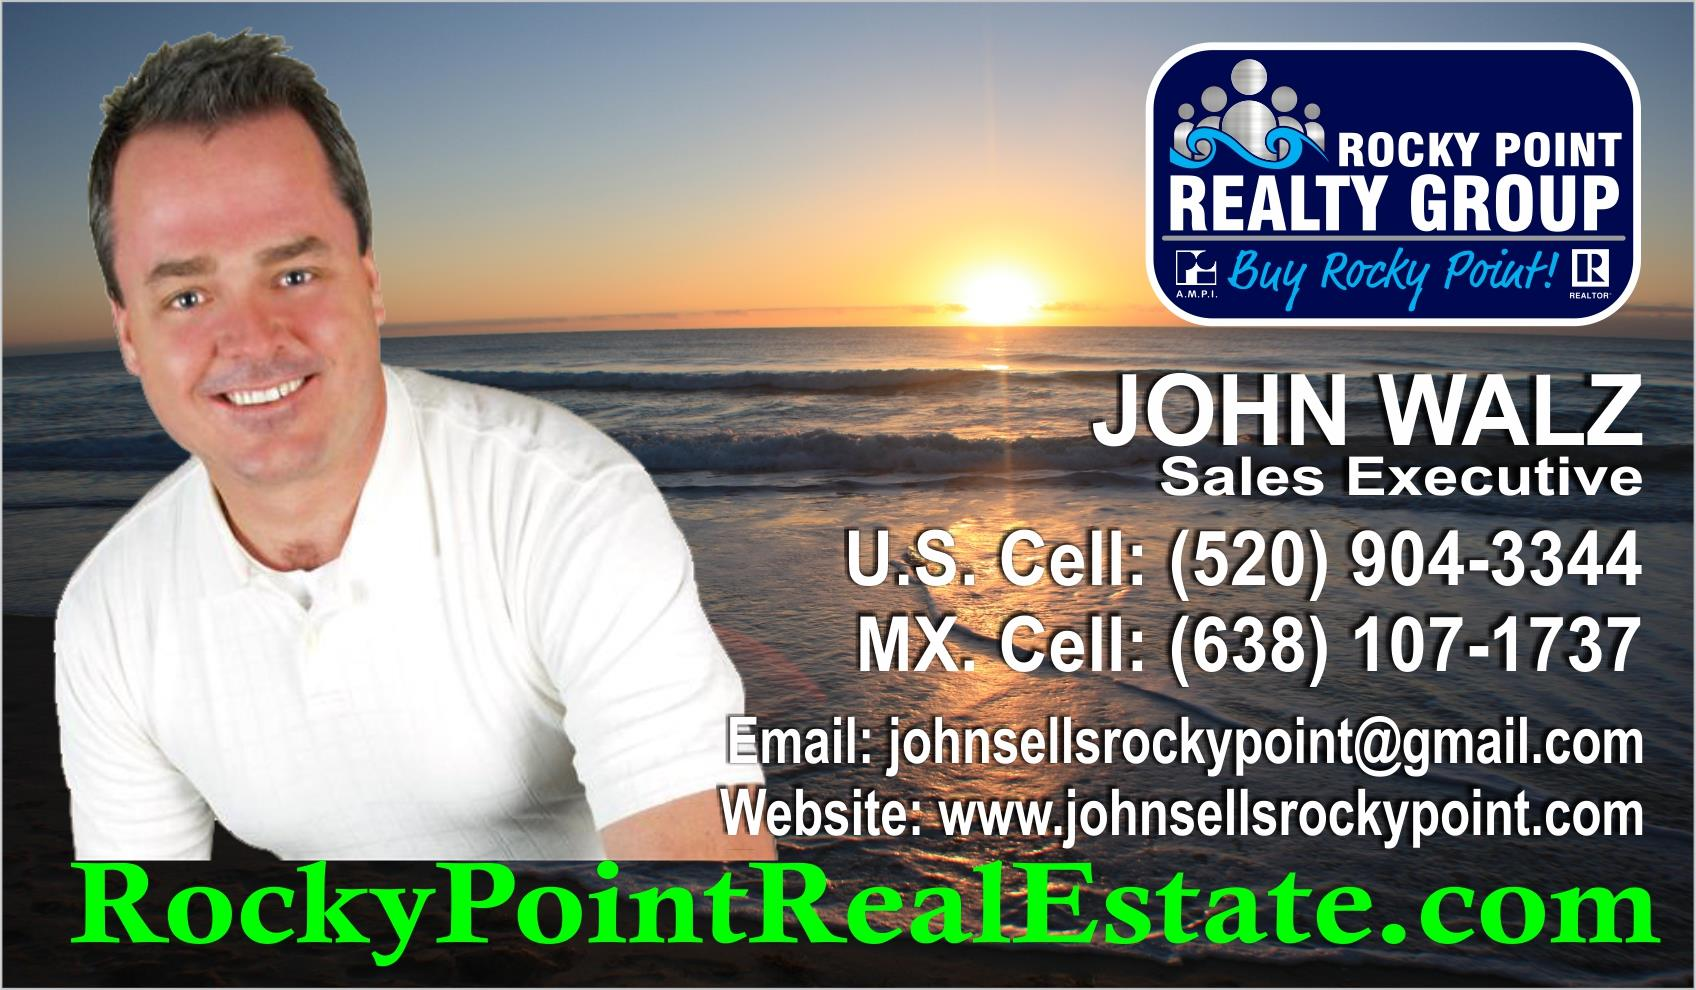 Rocky Point Real Estate - John Walz - Realtor